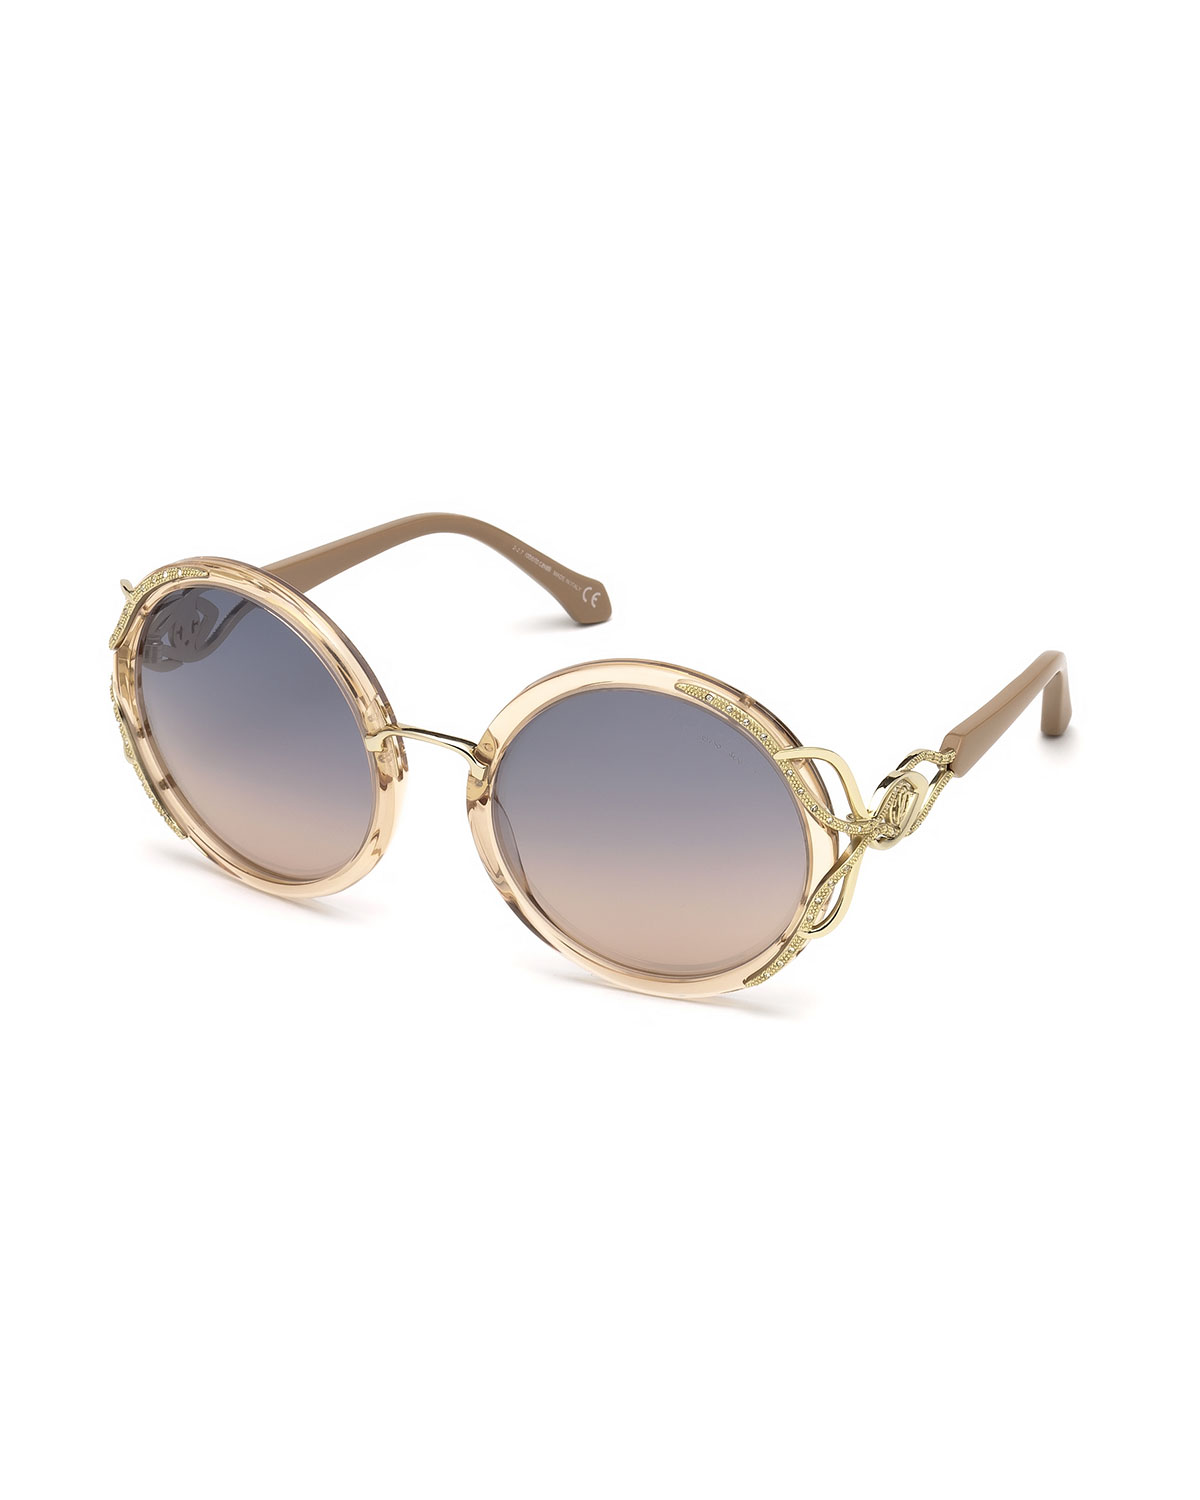 Roberto Cavalli Sunglasses ROUND SEMI-TRANSPARENT ACETATE SUNGLASSES